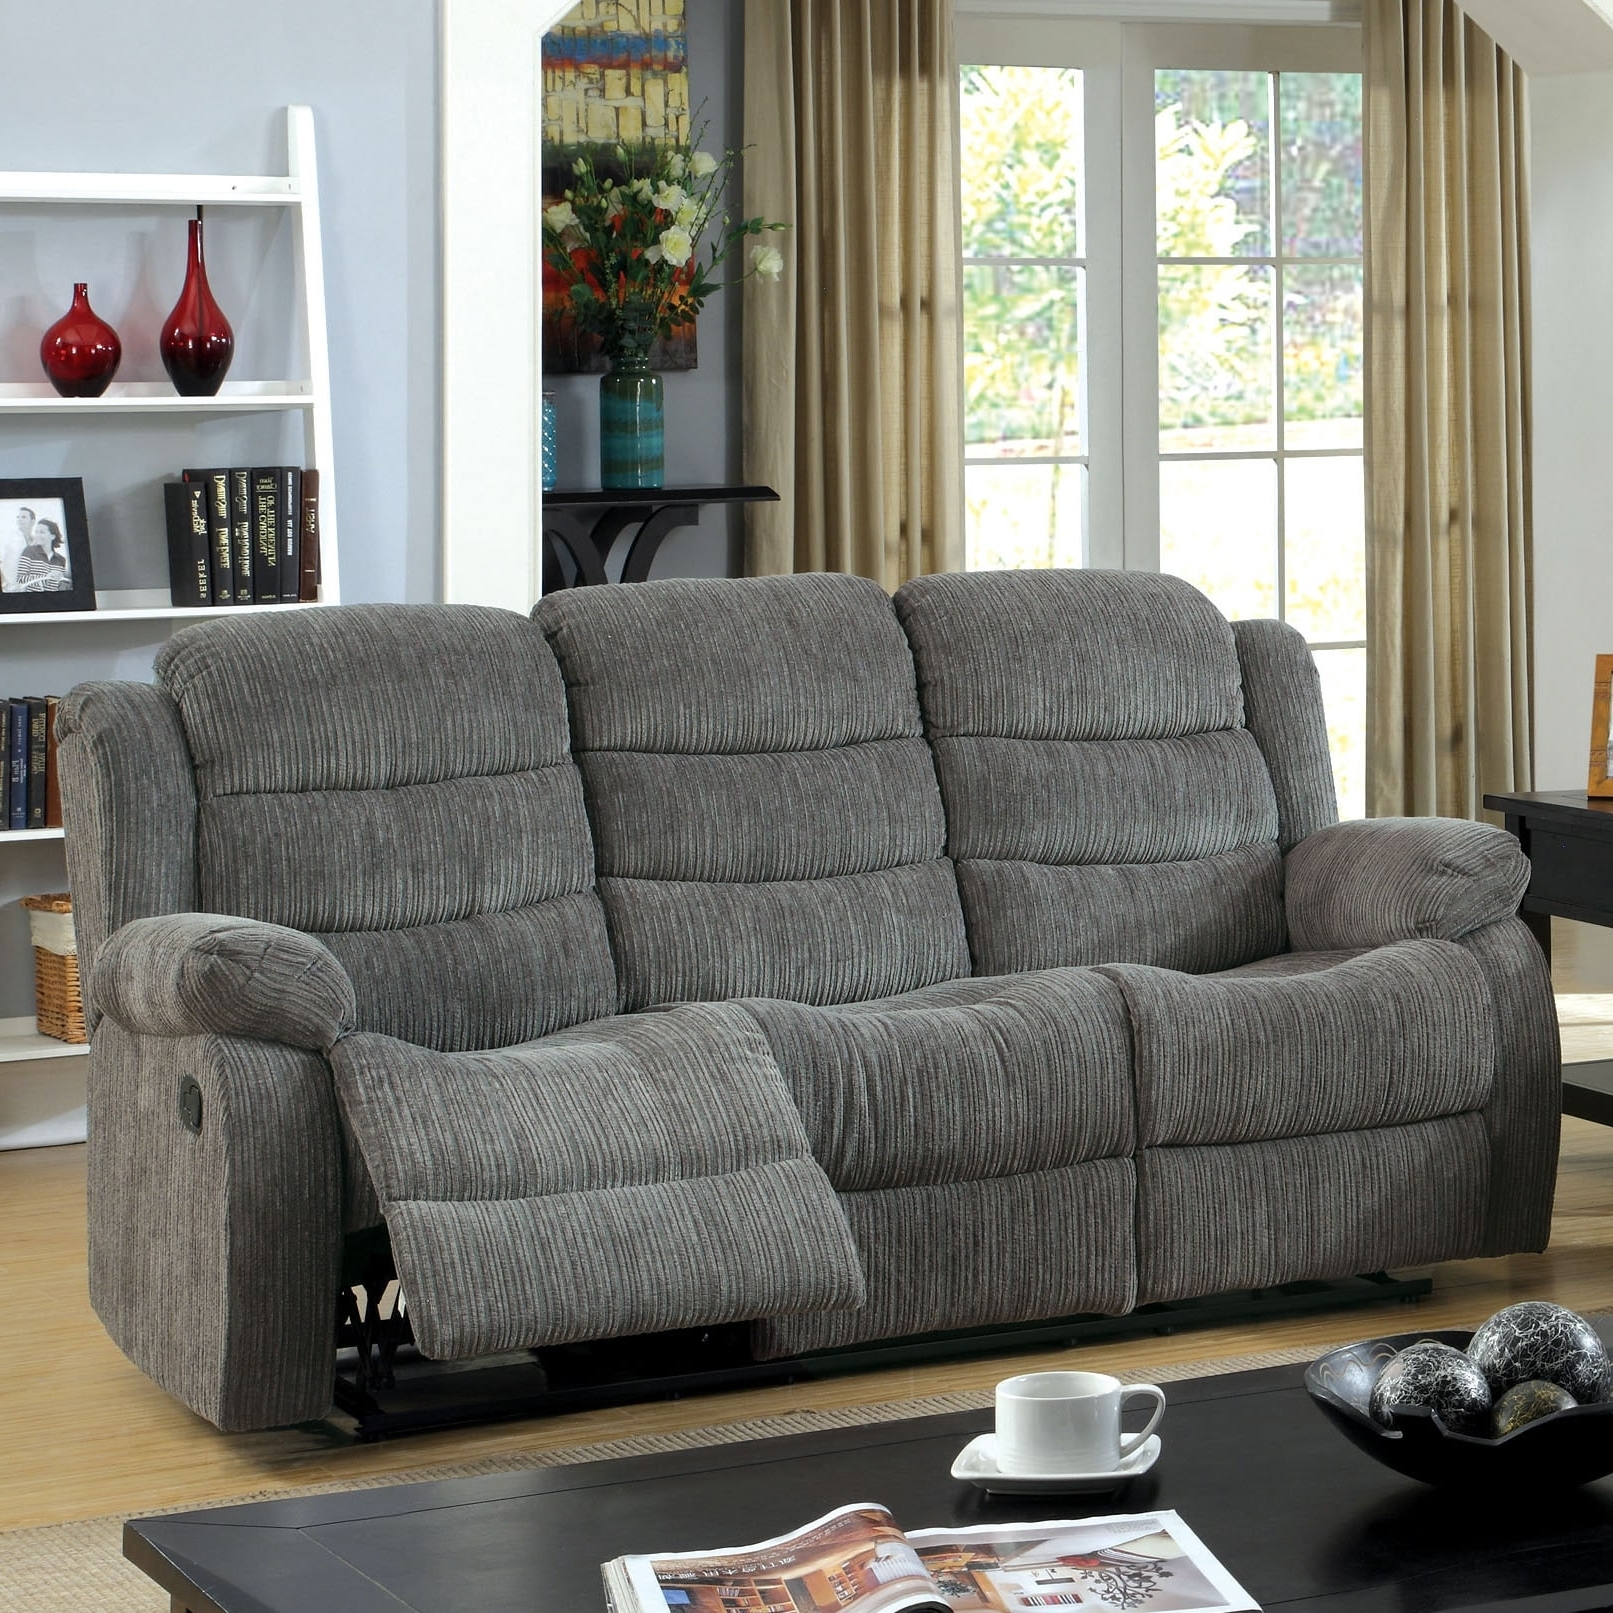 Greensboro Nc Sectional Sofas Pertaining To Most Recently Released American Furniture Warehouse Greensboro Nc Fresh Fresh Sectional (Gallery 14 of 15)